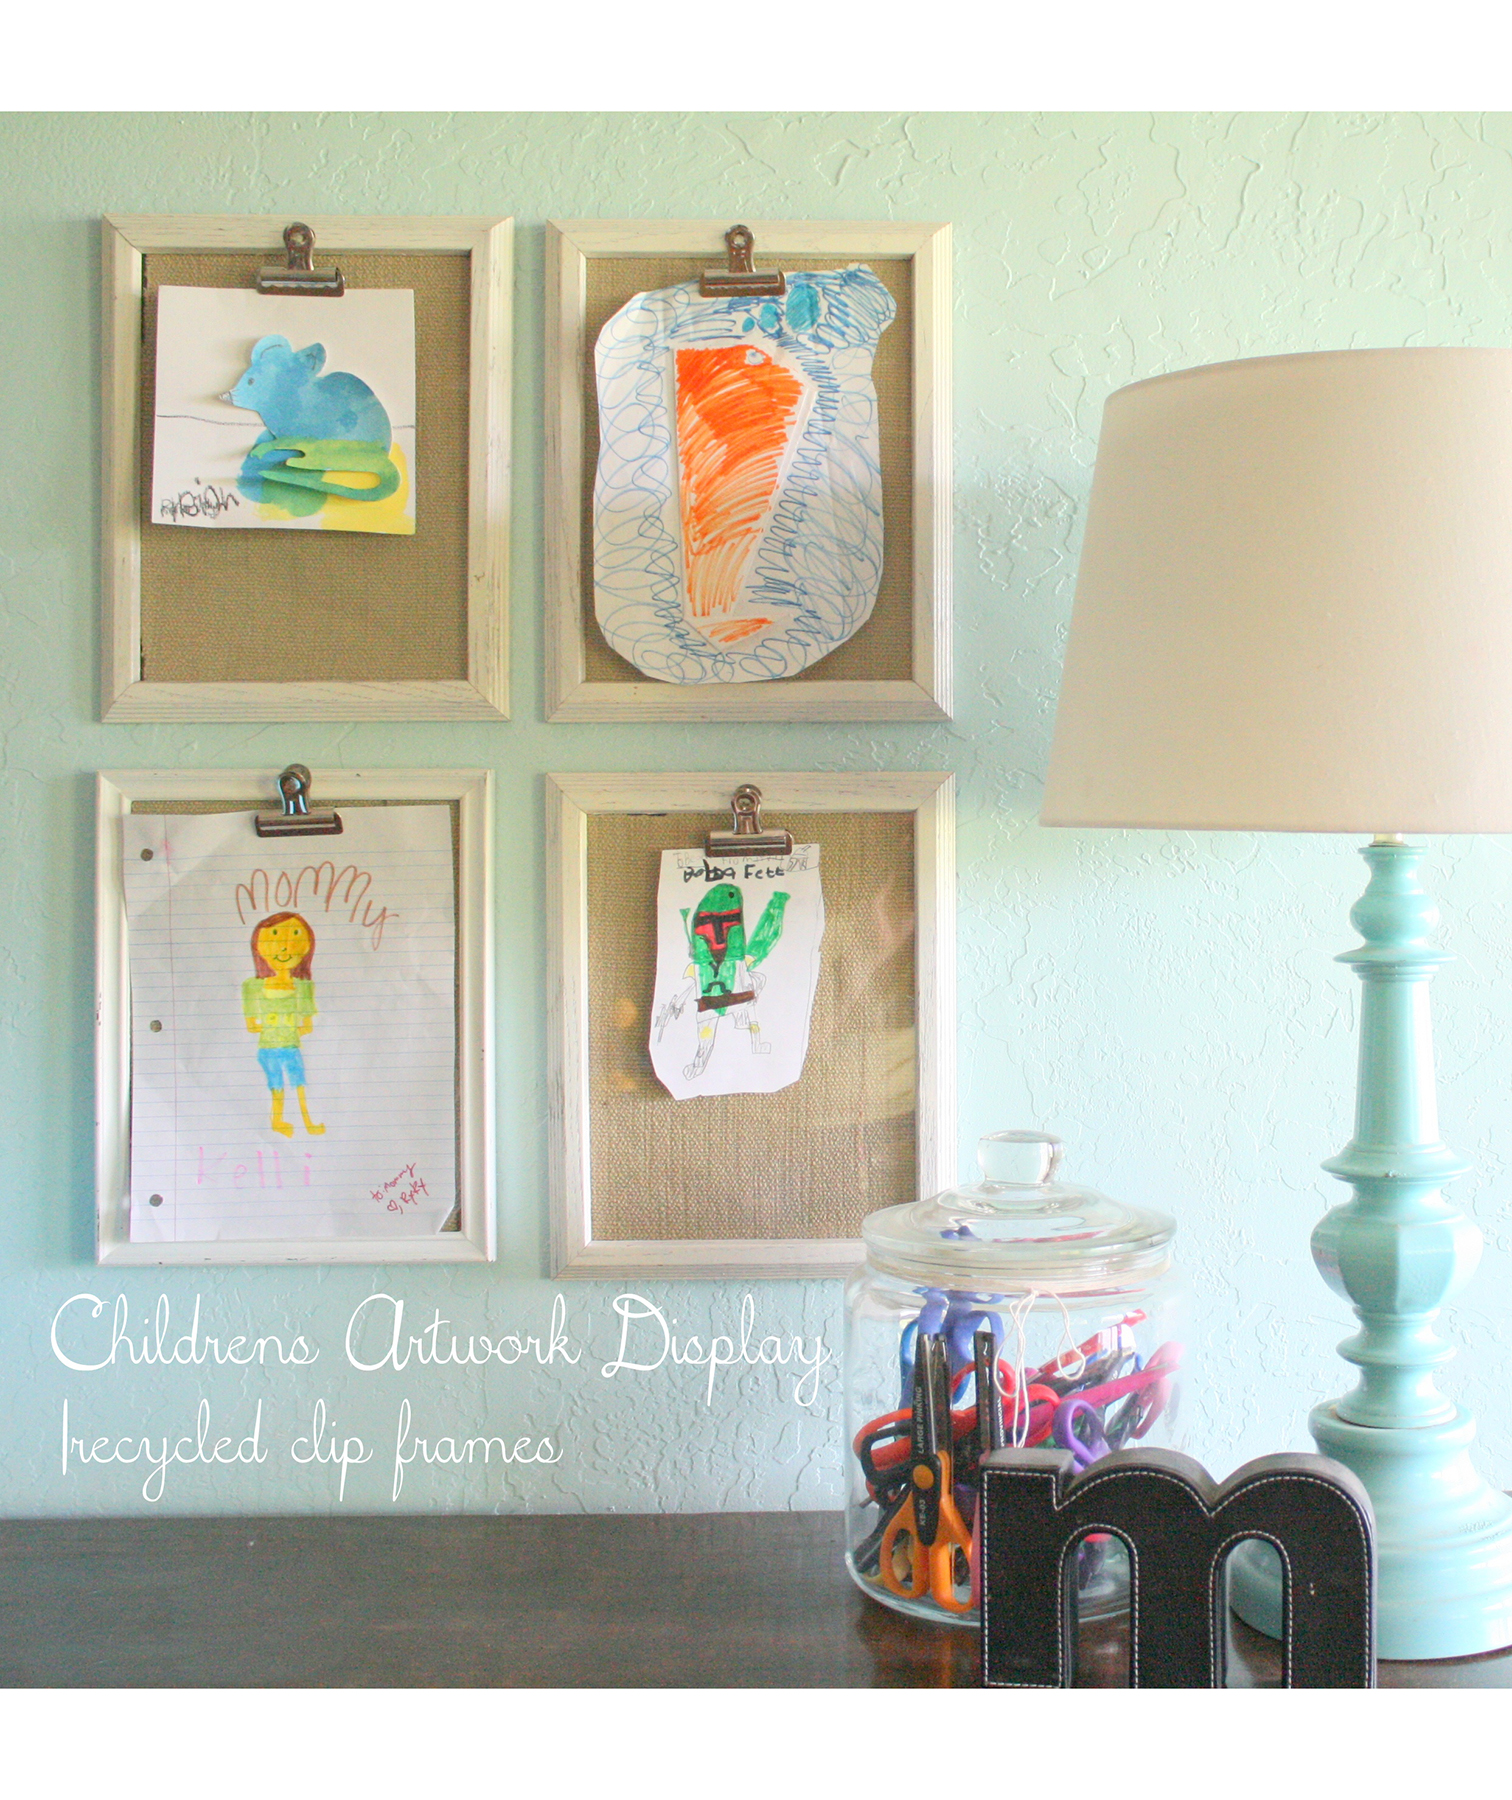 Kids' art on clipboards on wall